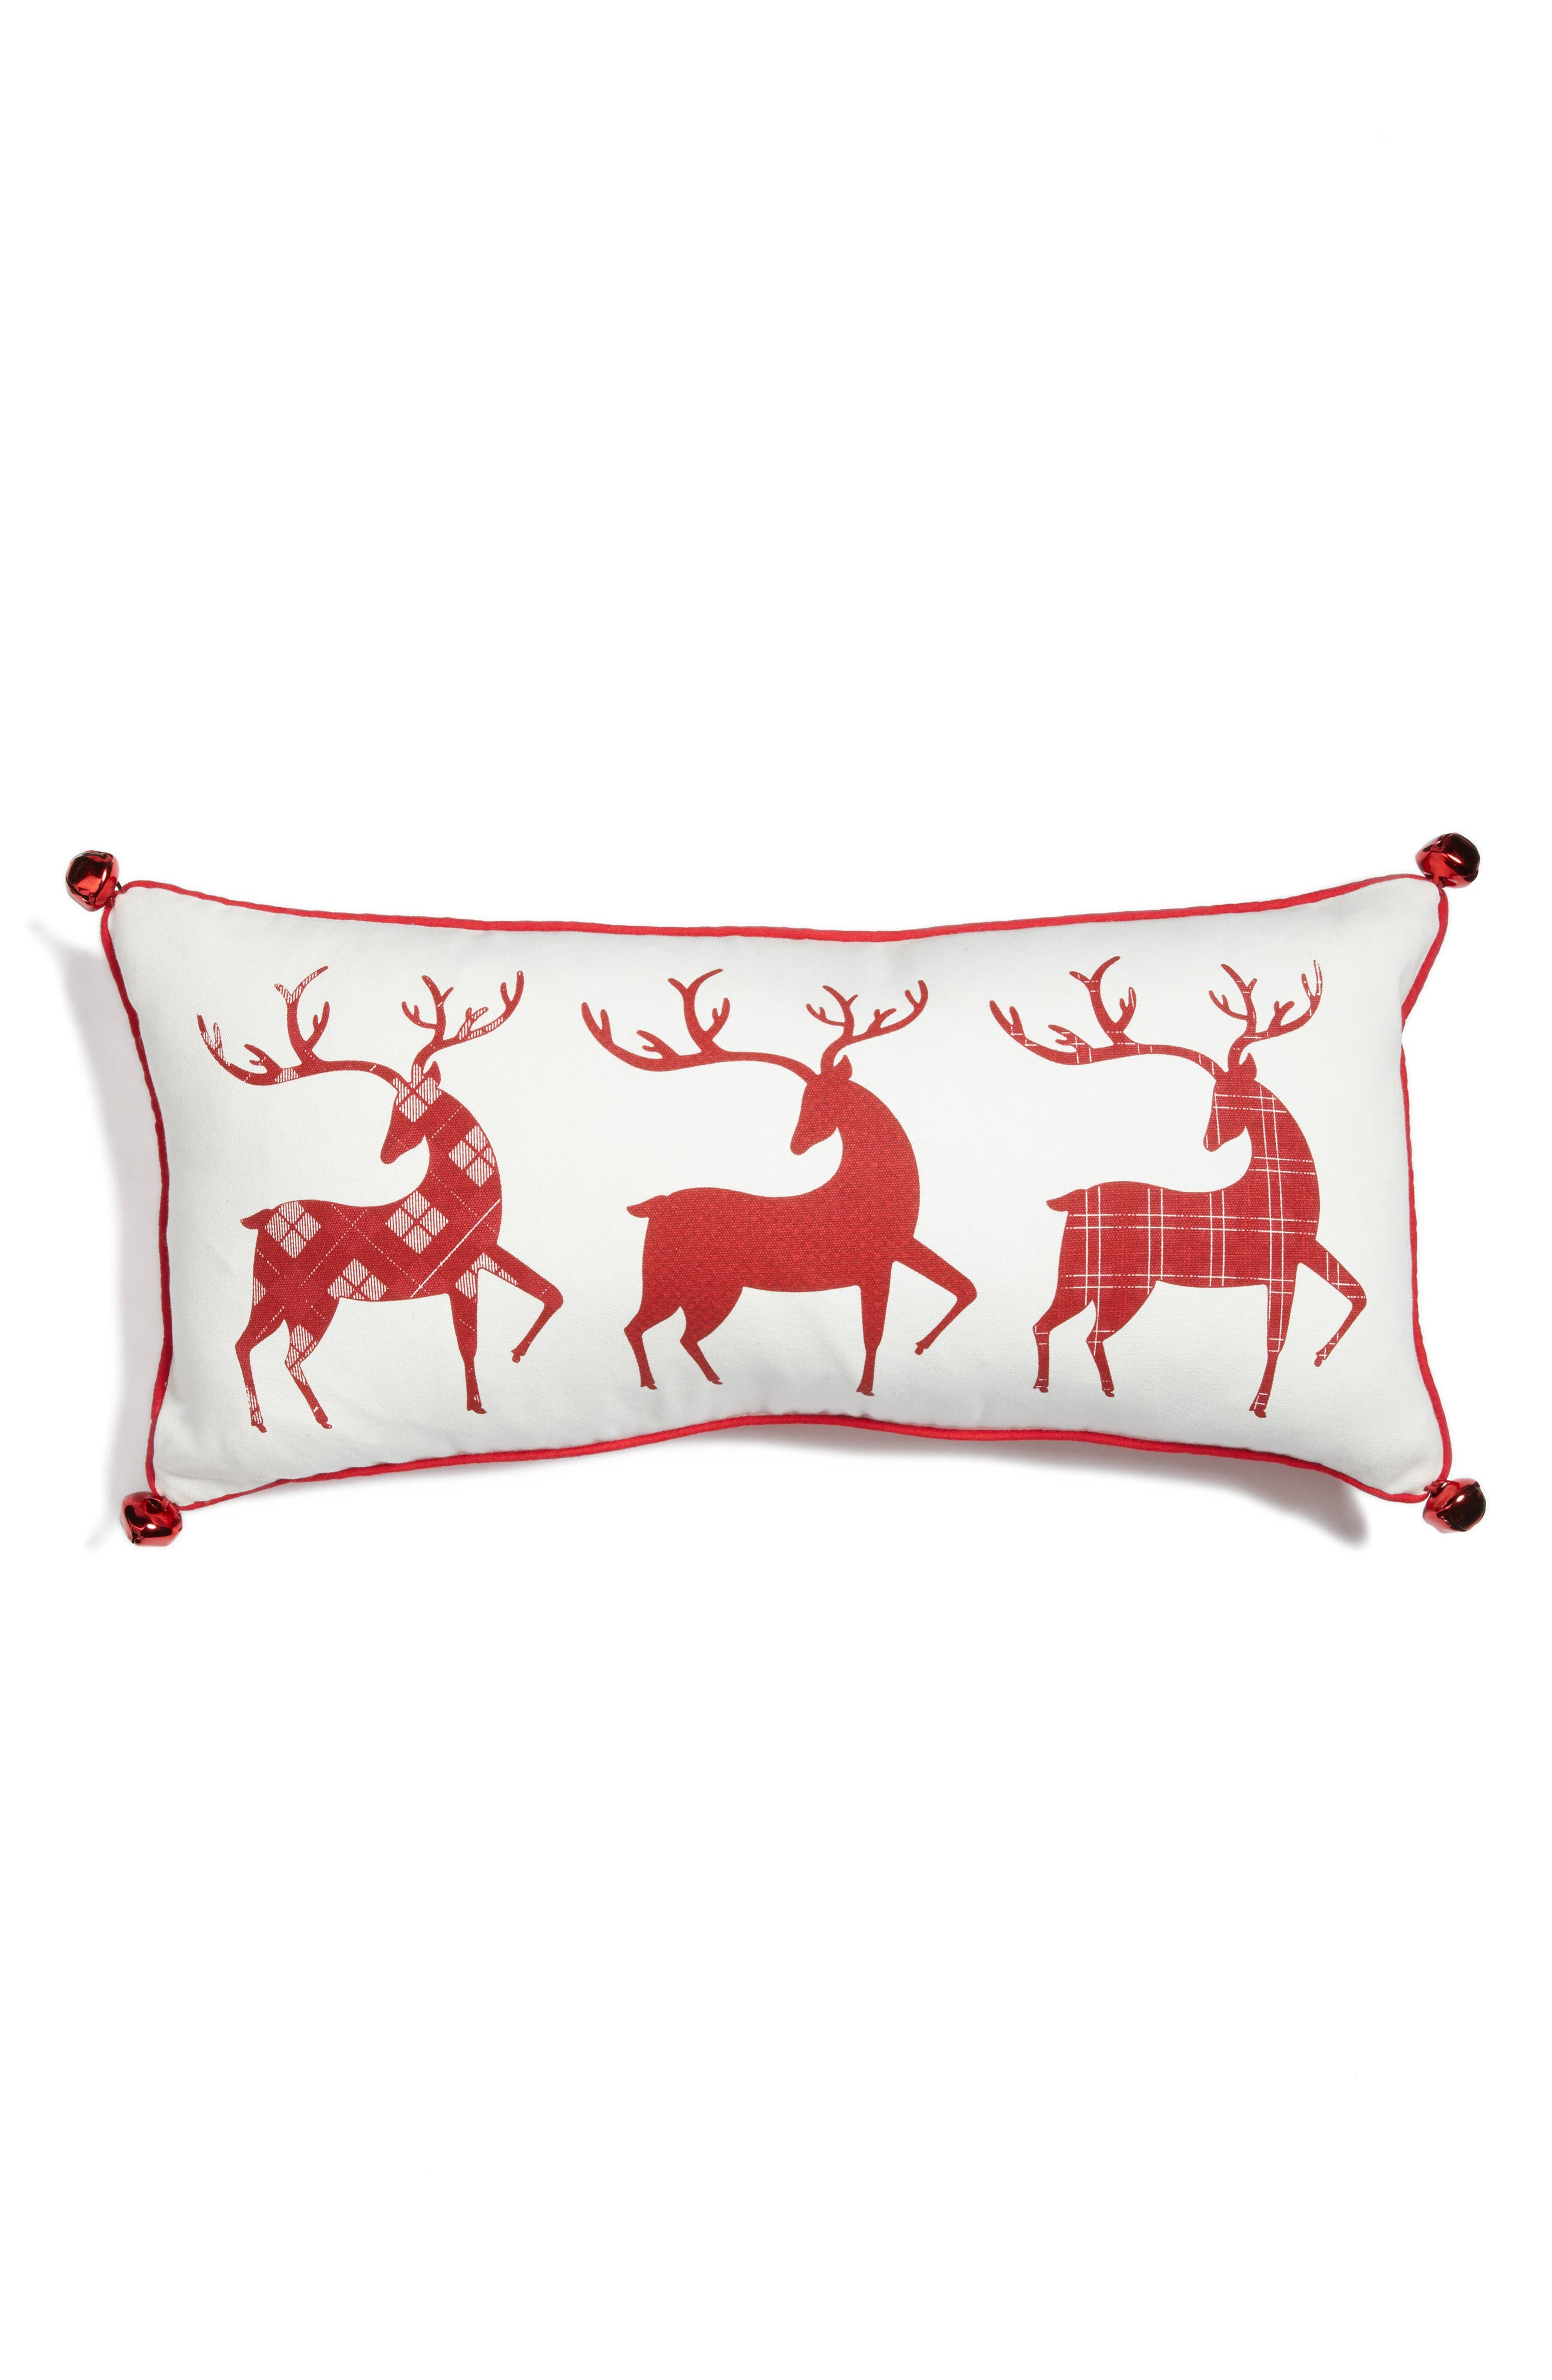 Alternate Image 1 Selected - Levtex Three Reindeer Accent Pillow